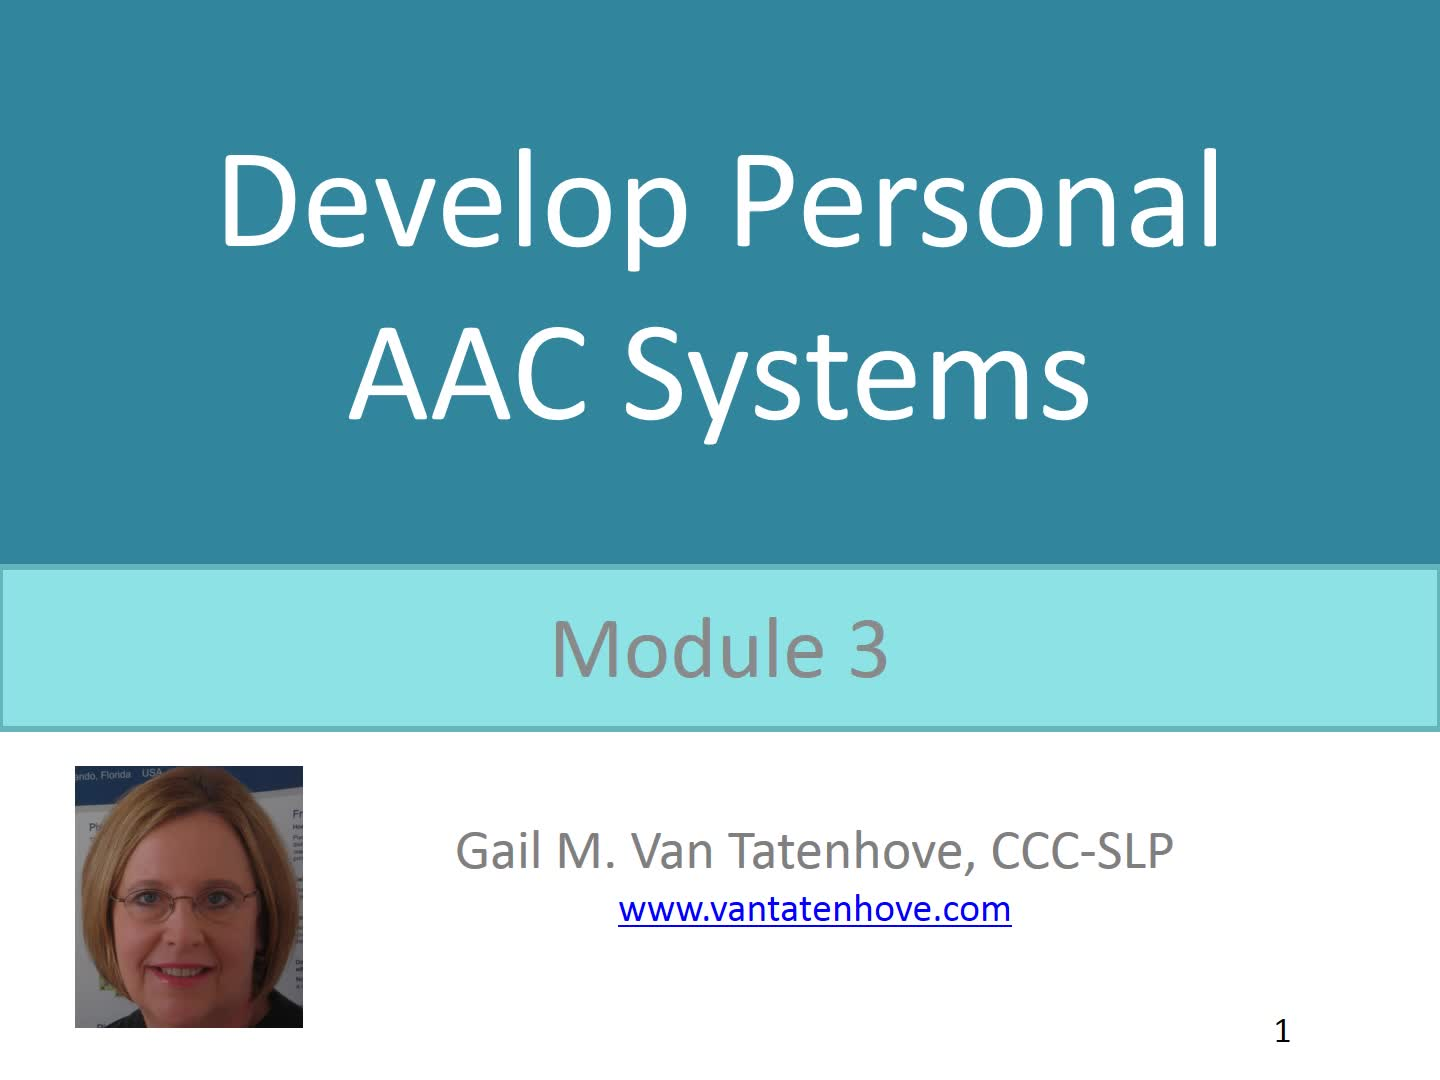 Module 3: Develop Personal AAC Systems